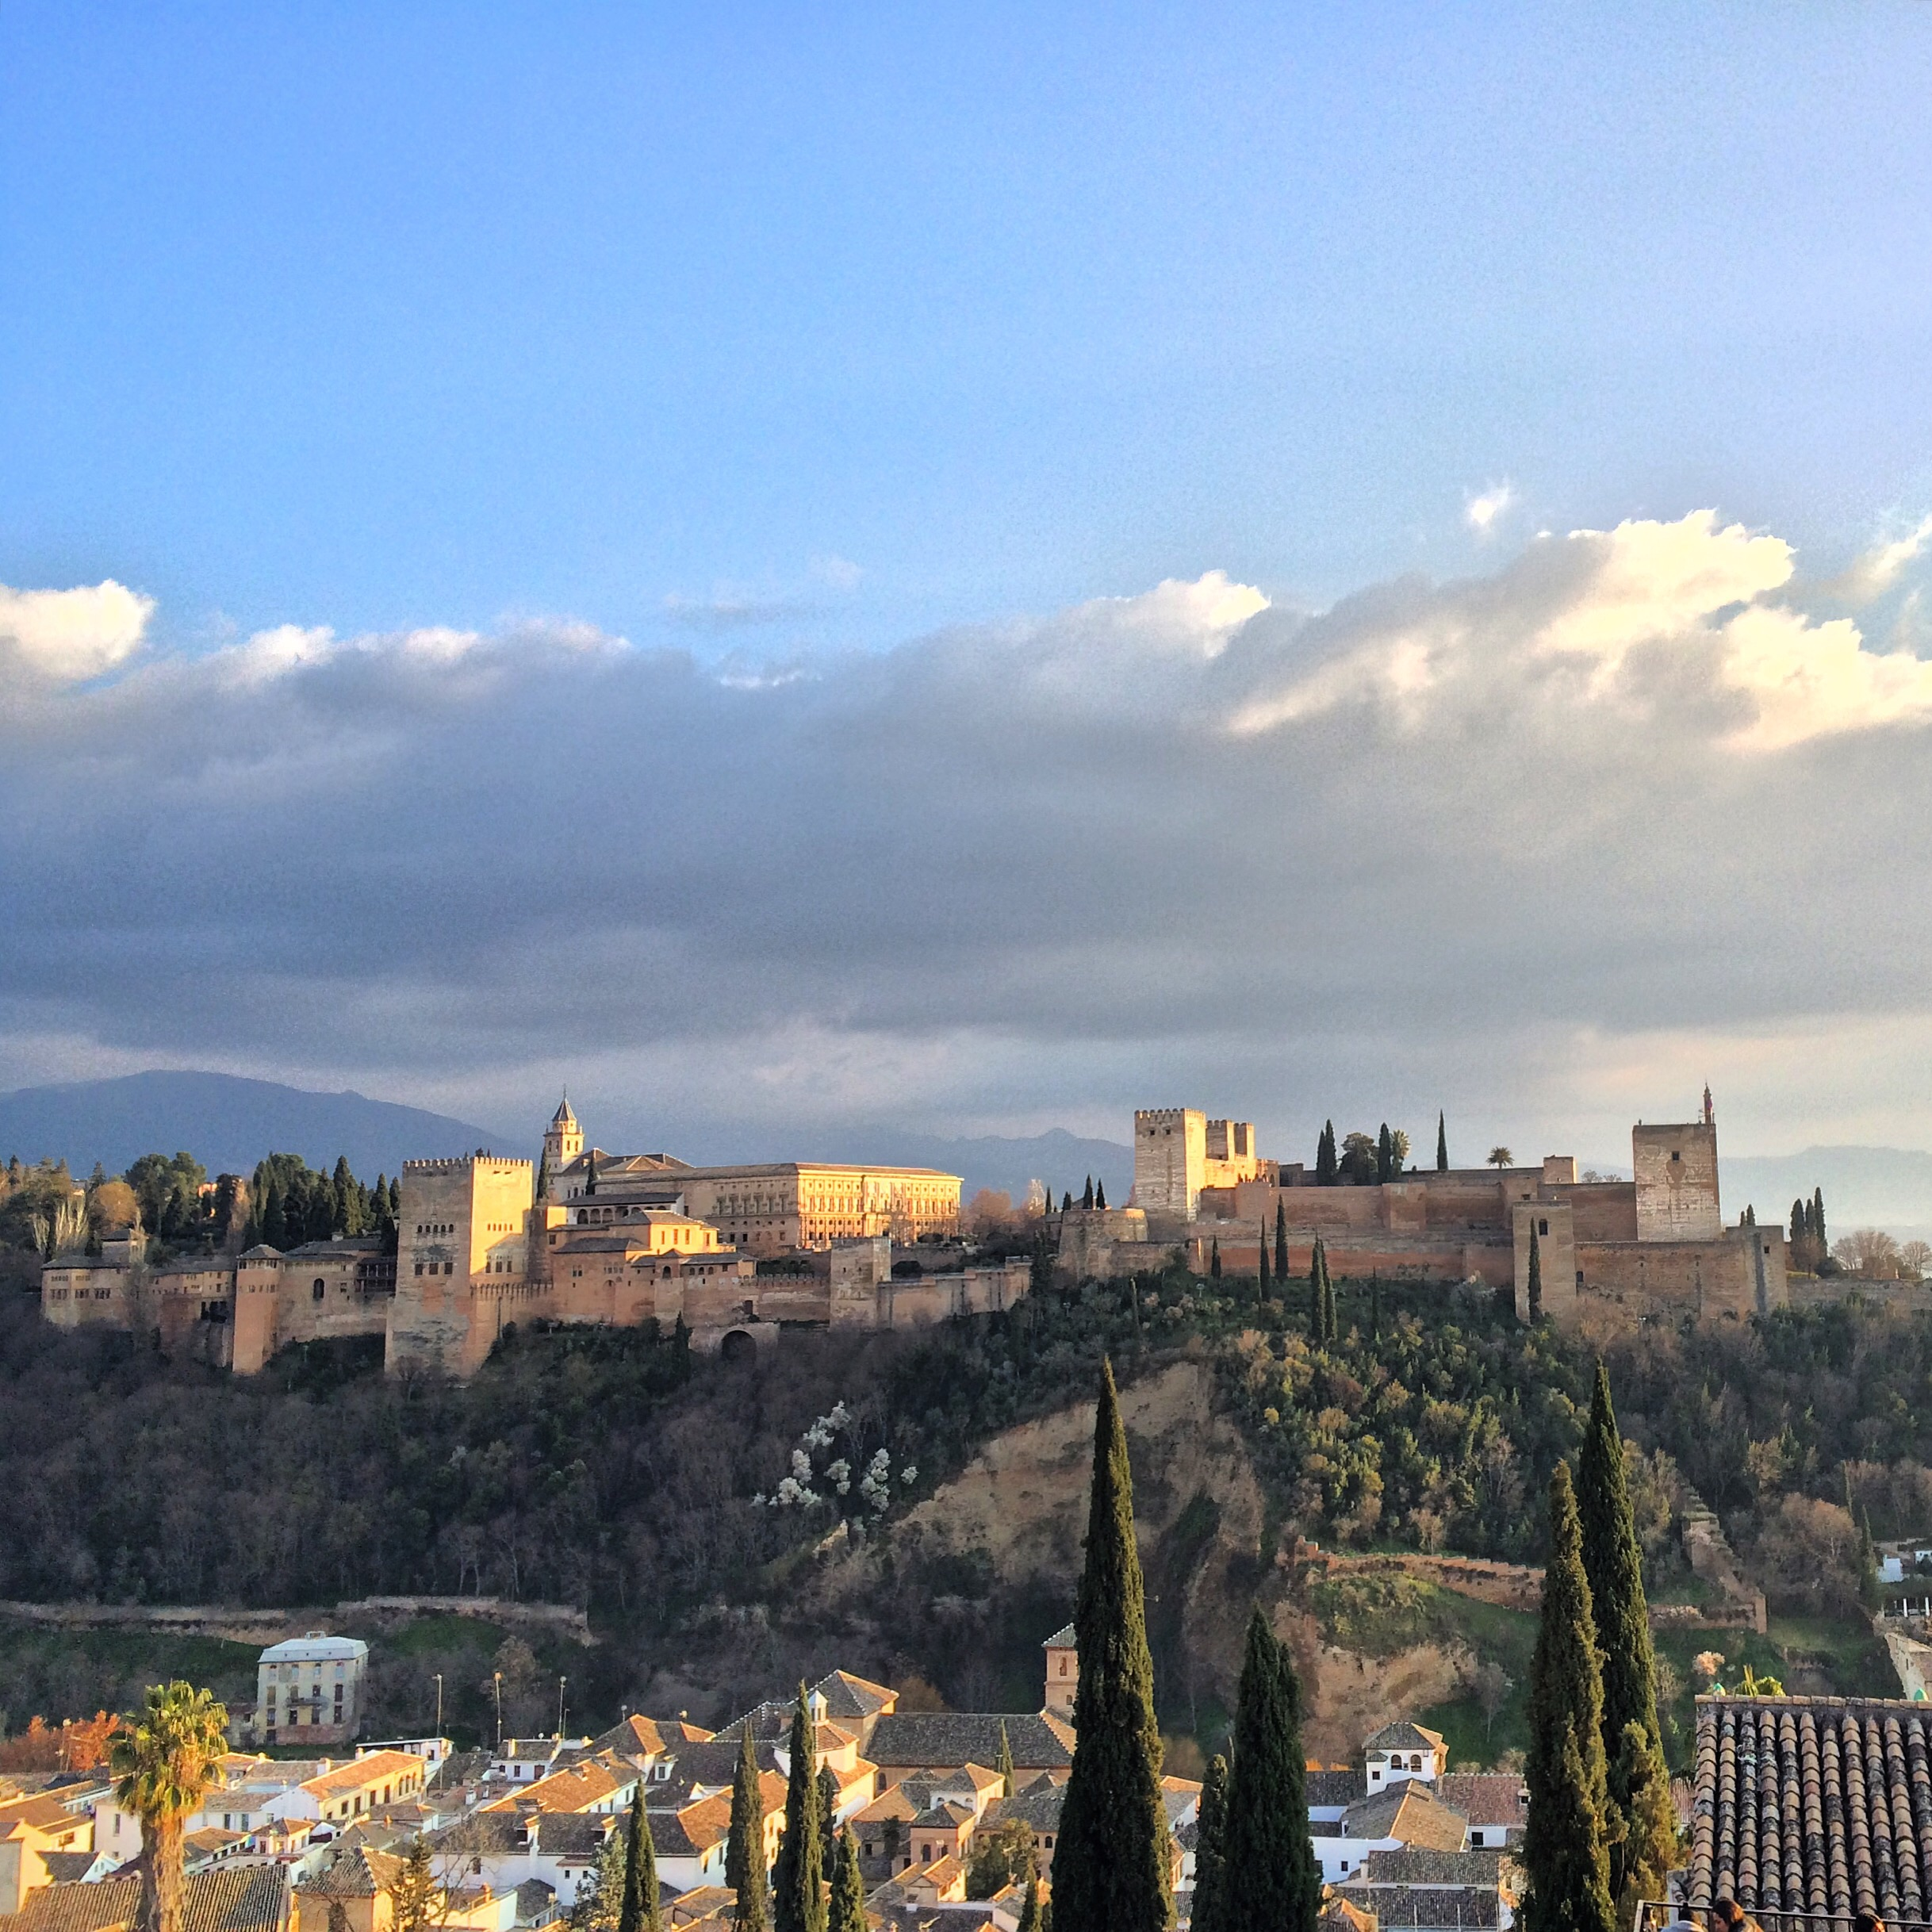 View of the Alhambra from Mirador San Nicolas